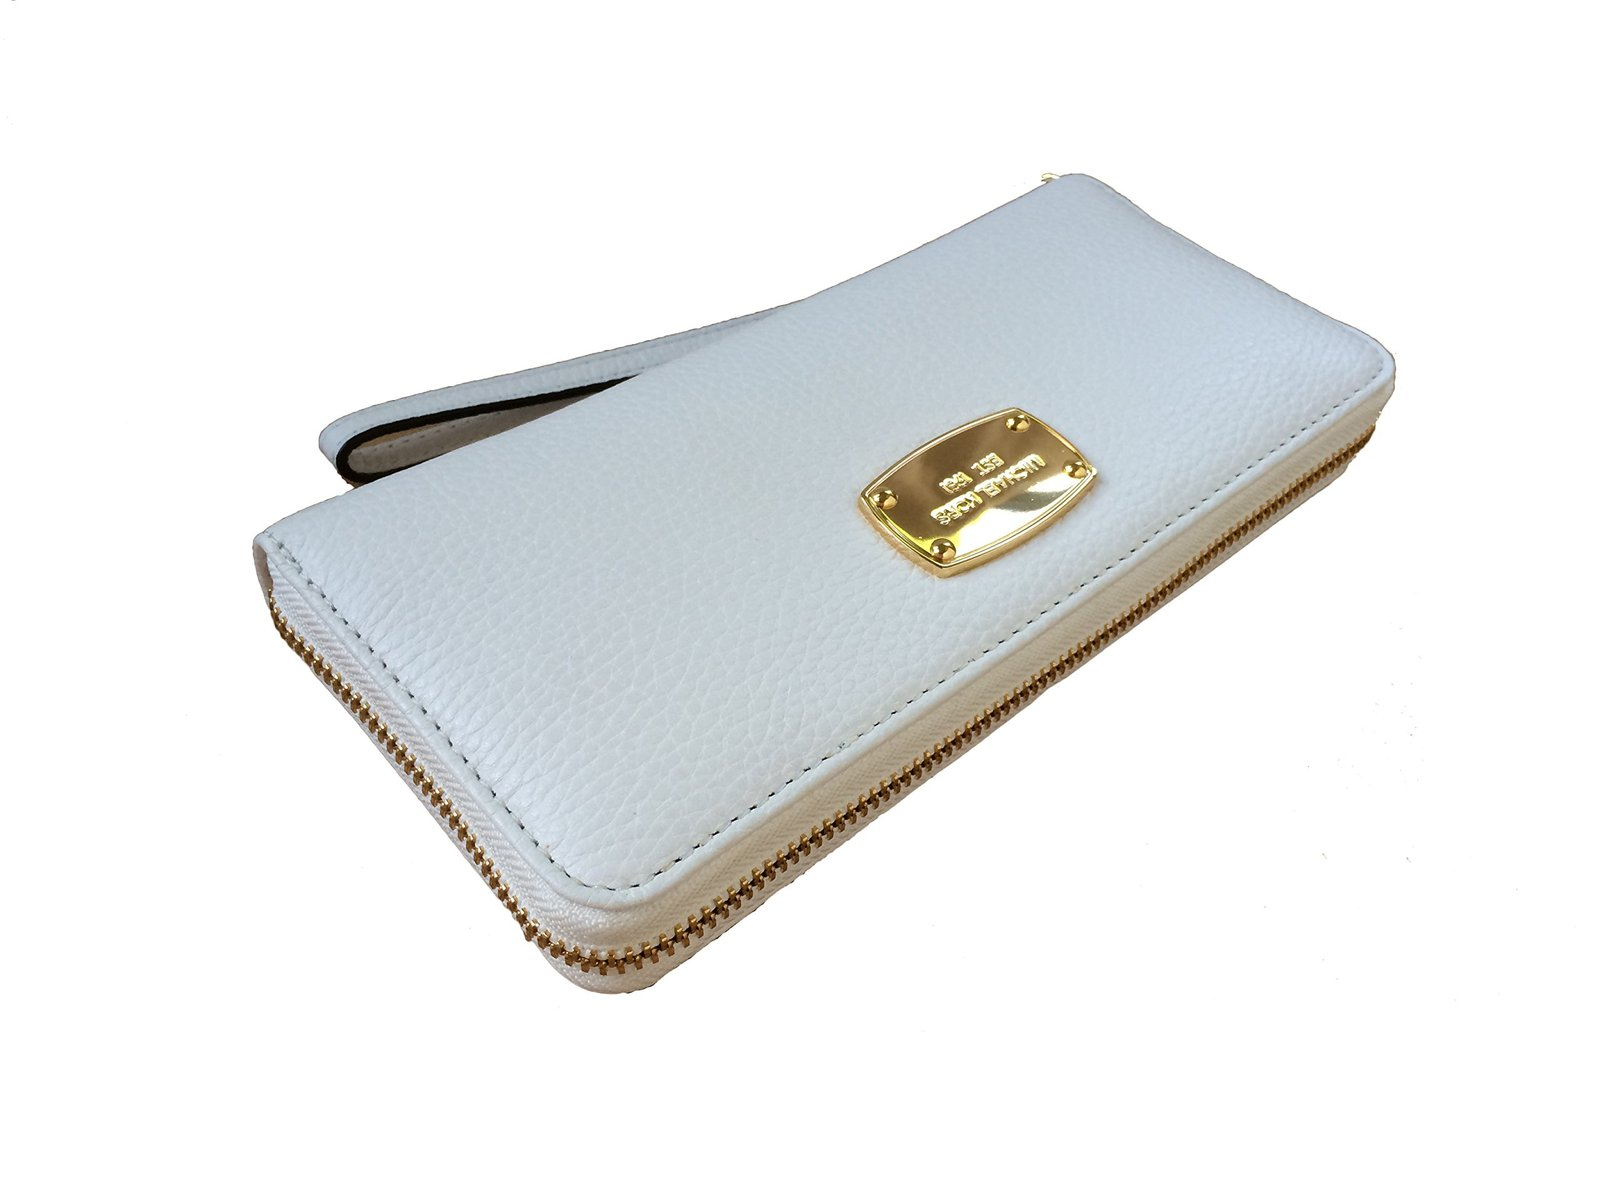 019f2096d5de 715psnvwfdl. 715psnvwfdl. Previous. Michael Kors Optic White Leather Jet  Set Travel Continental Zip Around Wallet.